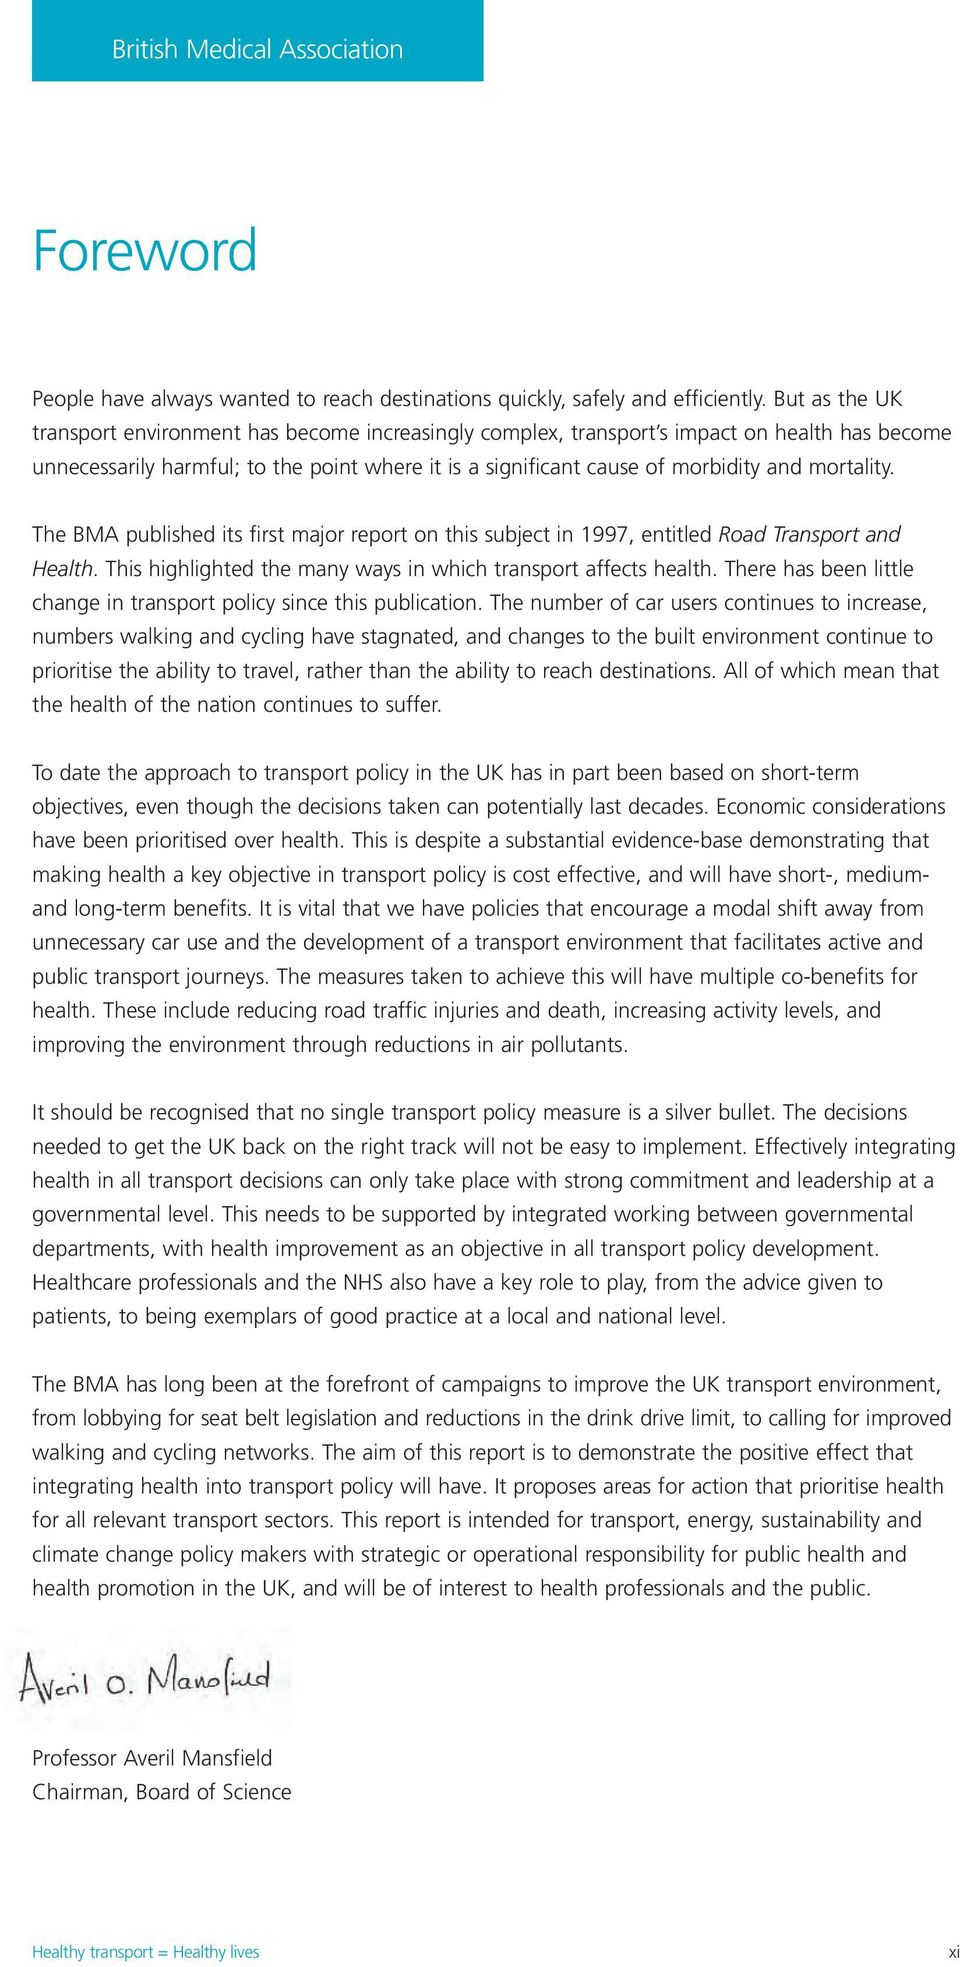 mortality. The BMA published its first major report on this subject in 1997, entitled Road Transport and Health. This highlighted the many ways in which transport affects health.